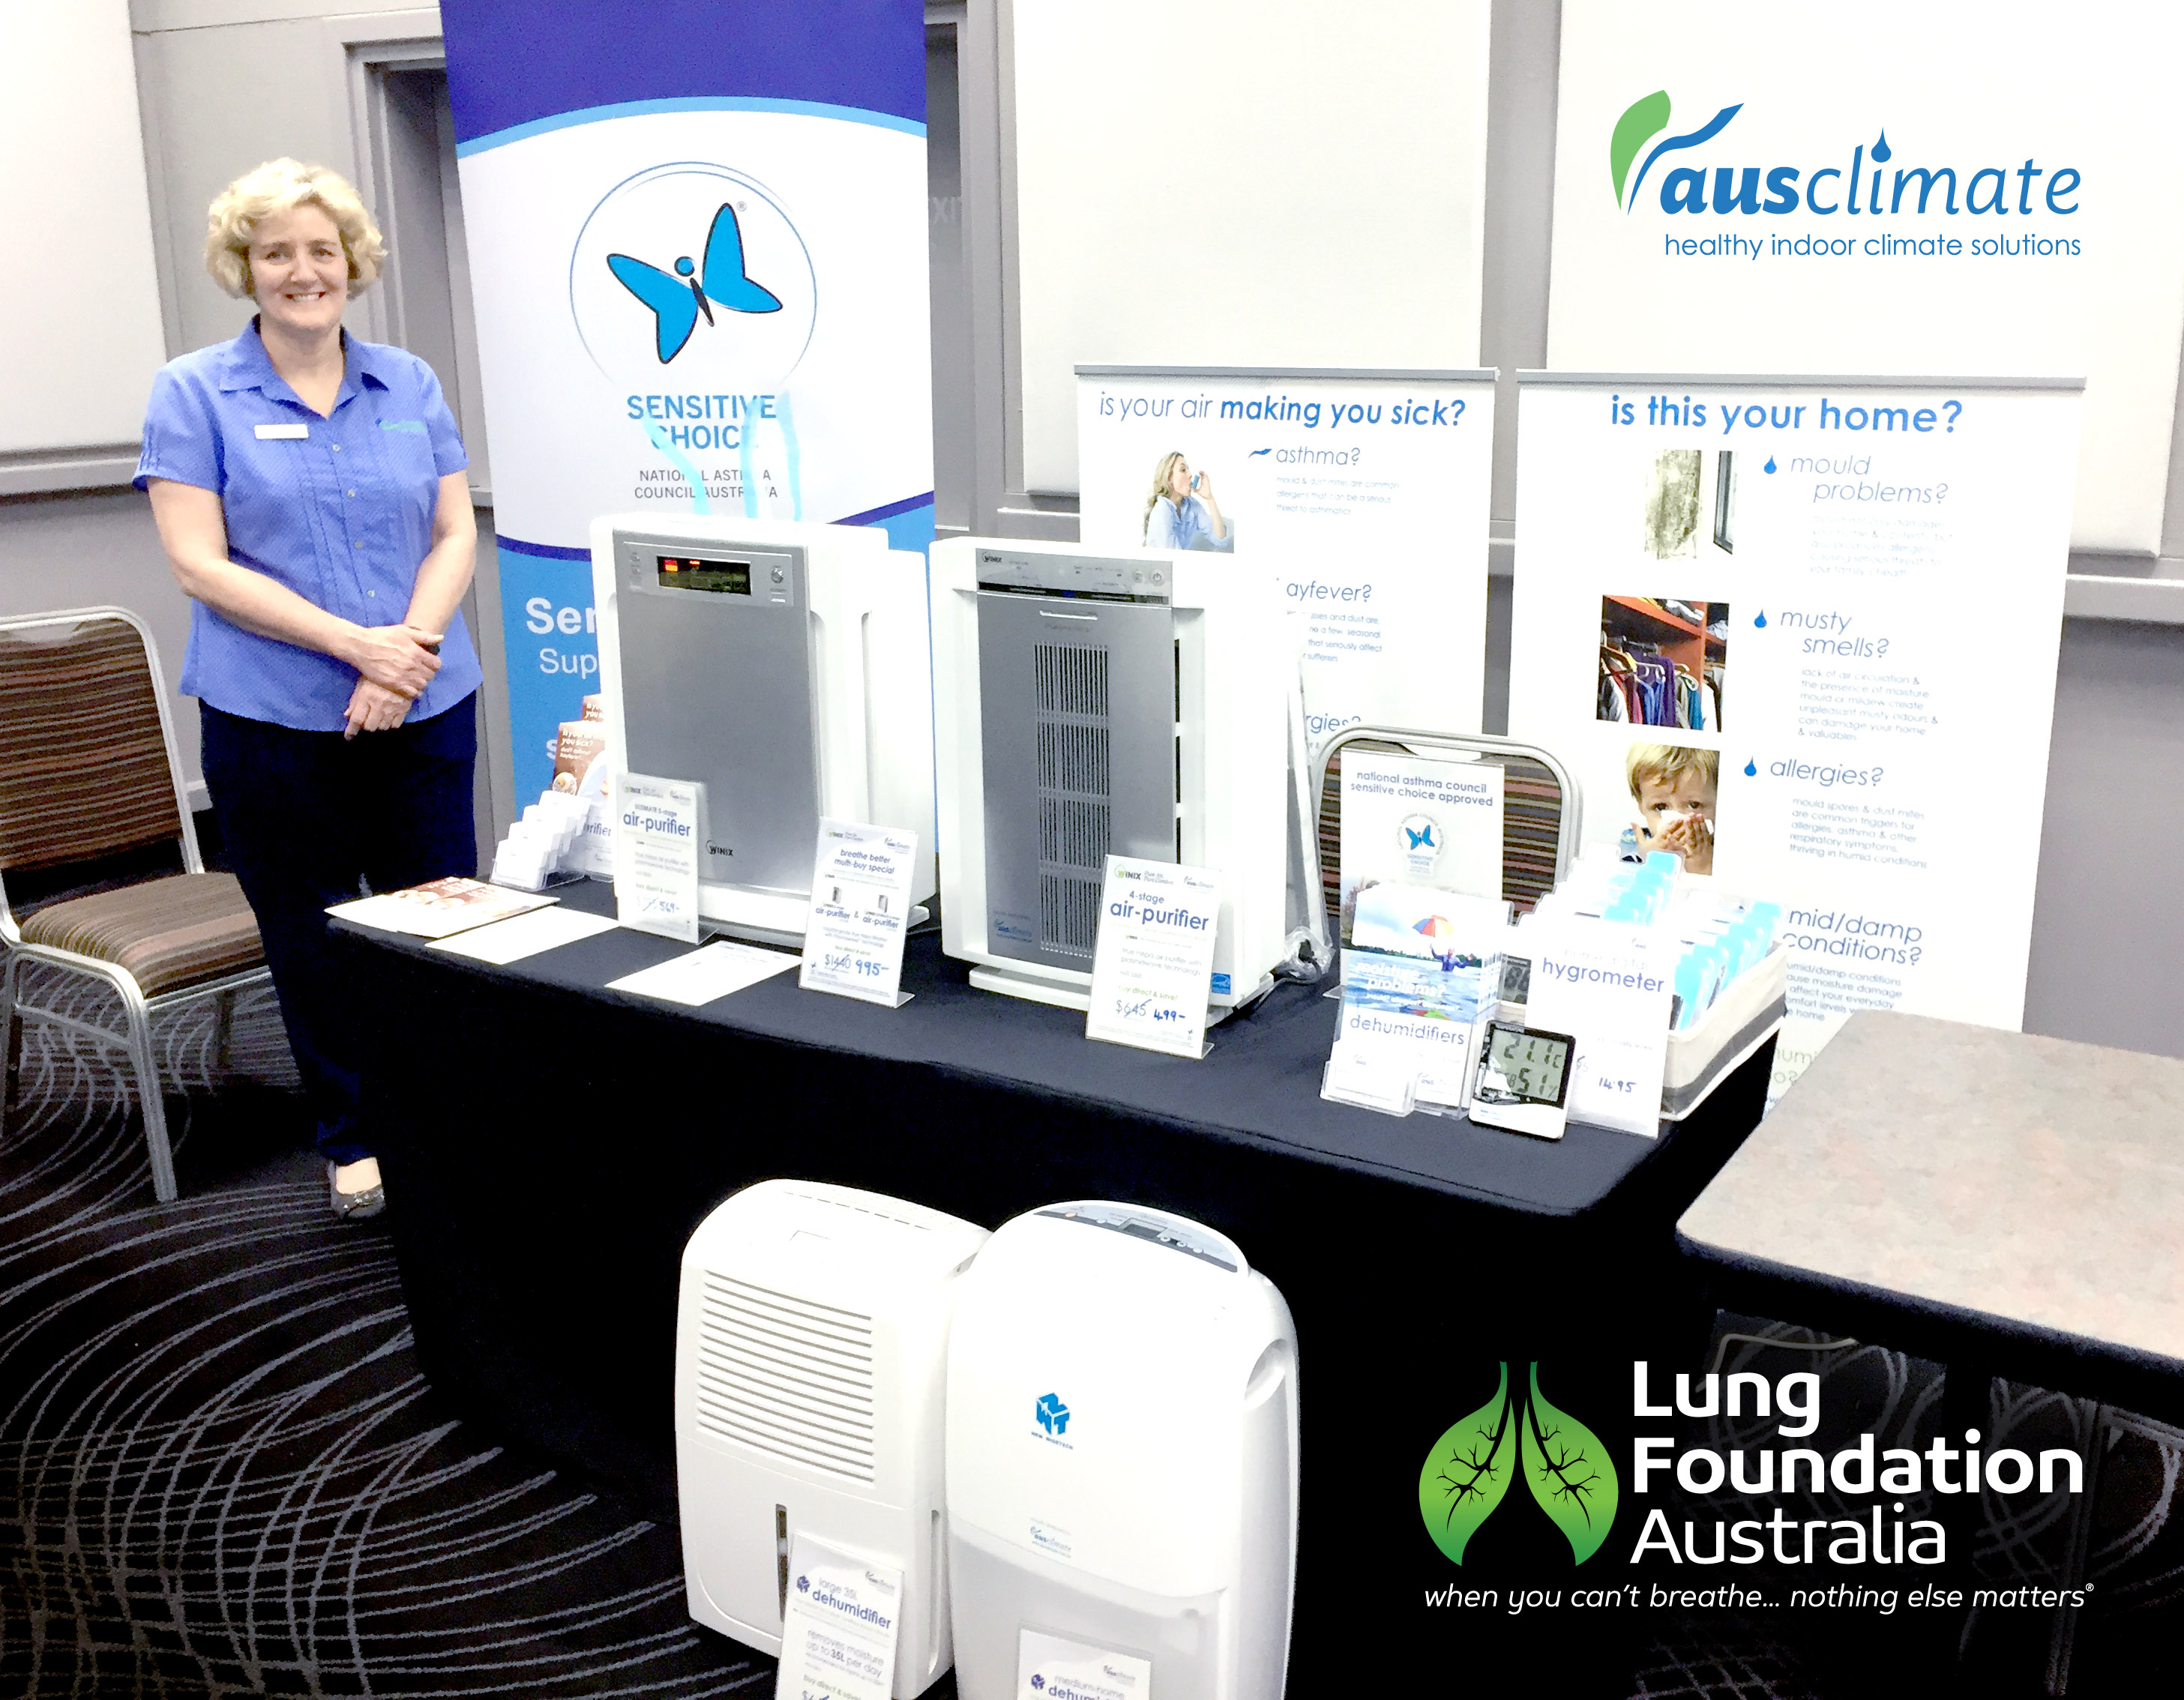 Ausclimate-Lung Foundation Chermside Seminar